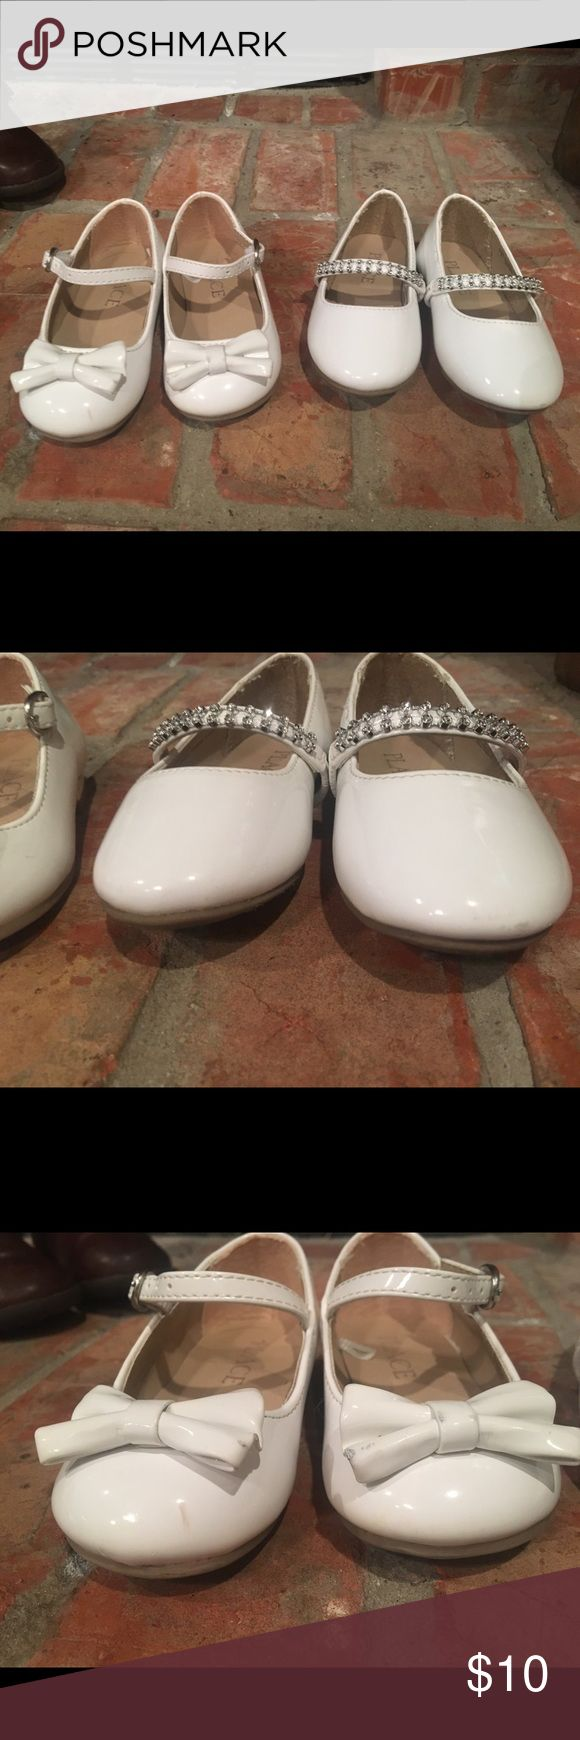 Size 5 toddler dress shoe bundle Two pairs of off white dress shoes. Scuffs to front of both shoes, not very visible to naked eye, unless you are up close and inspecting. My daughter wore these only a few times for a wedding & for church. Children's Place Shoes Sandals